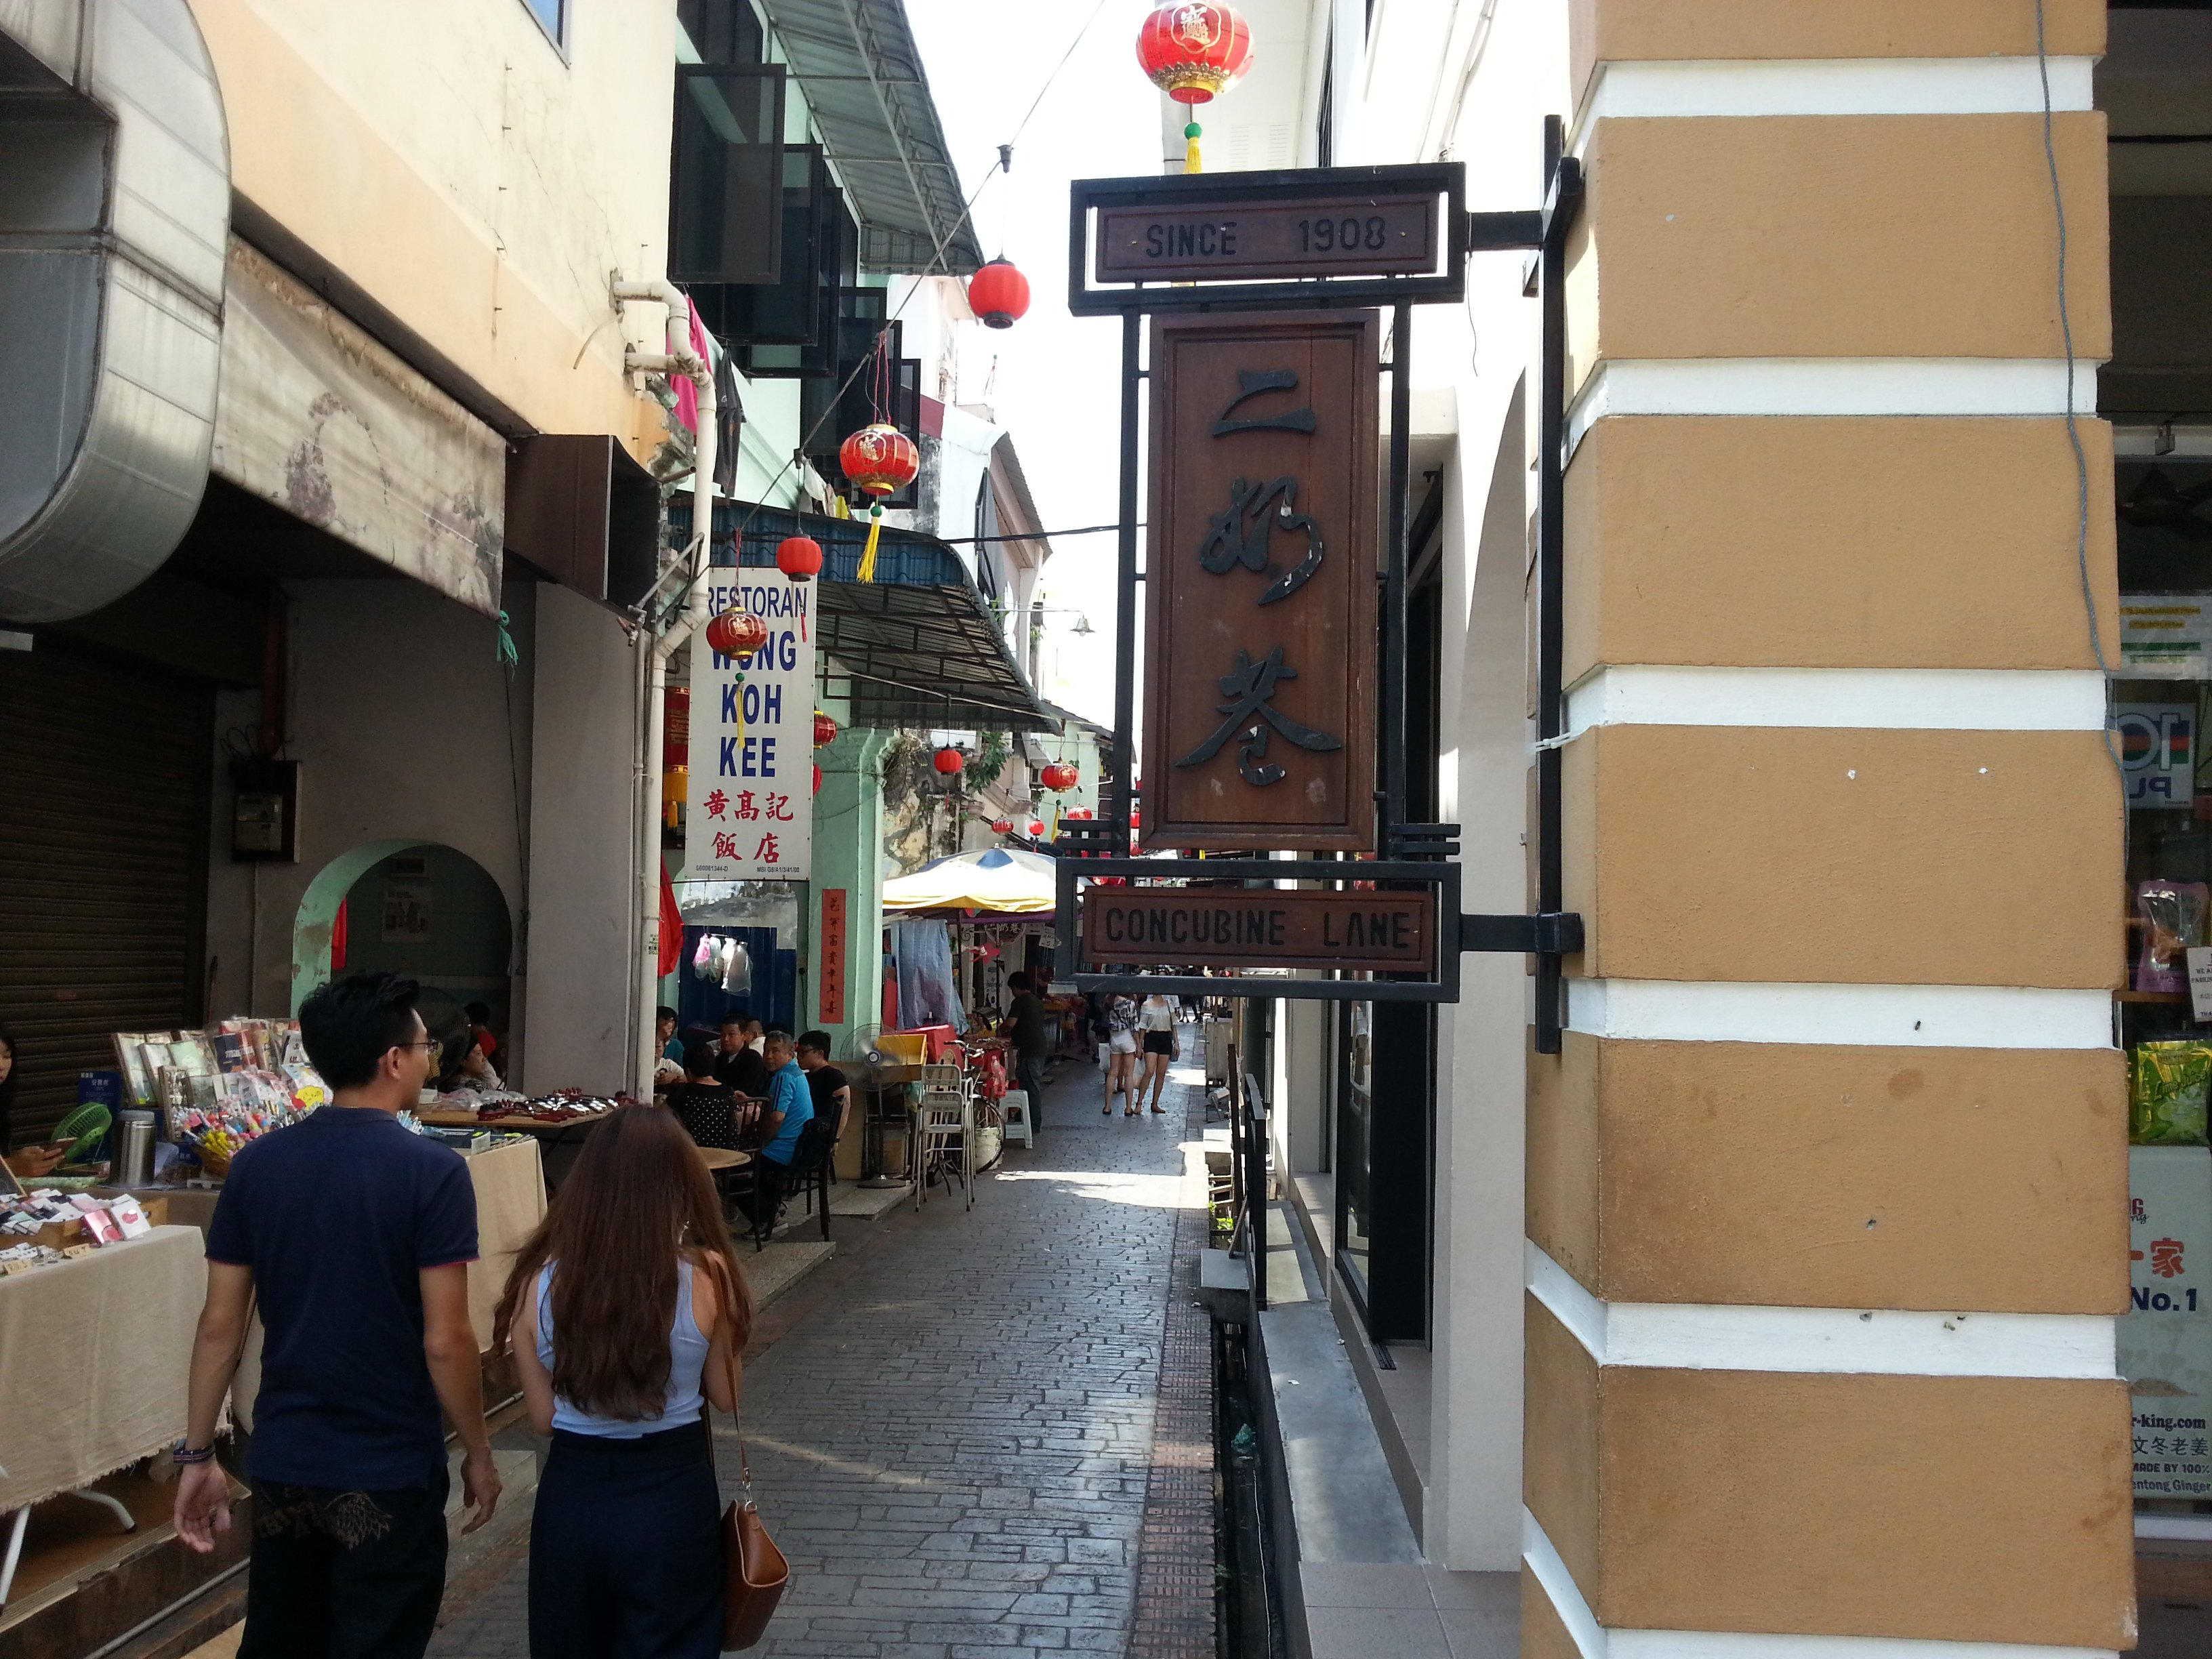 Entrance to the Eastern section of Concubine Lane